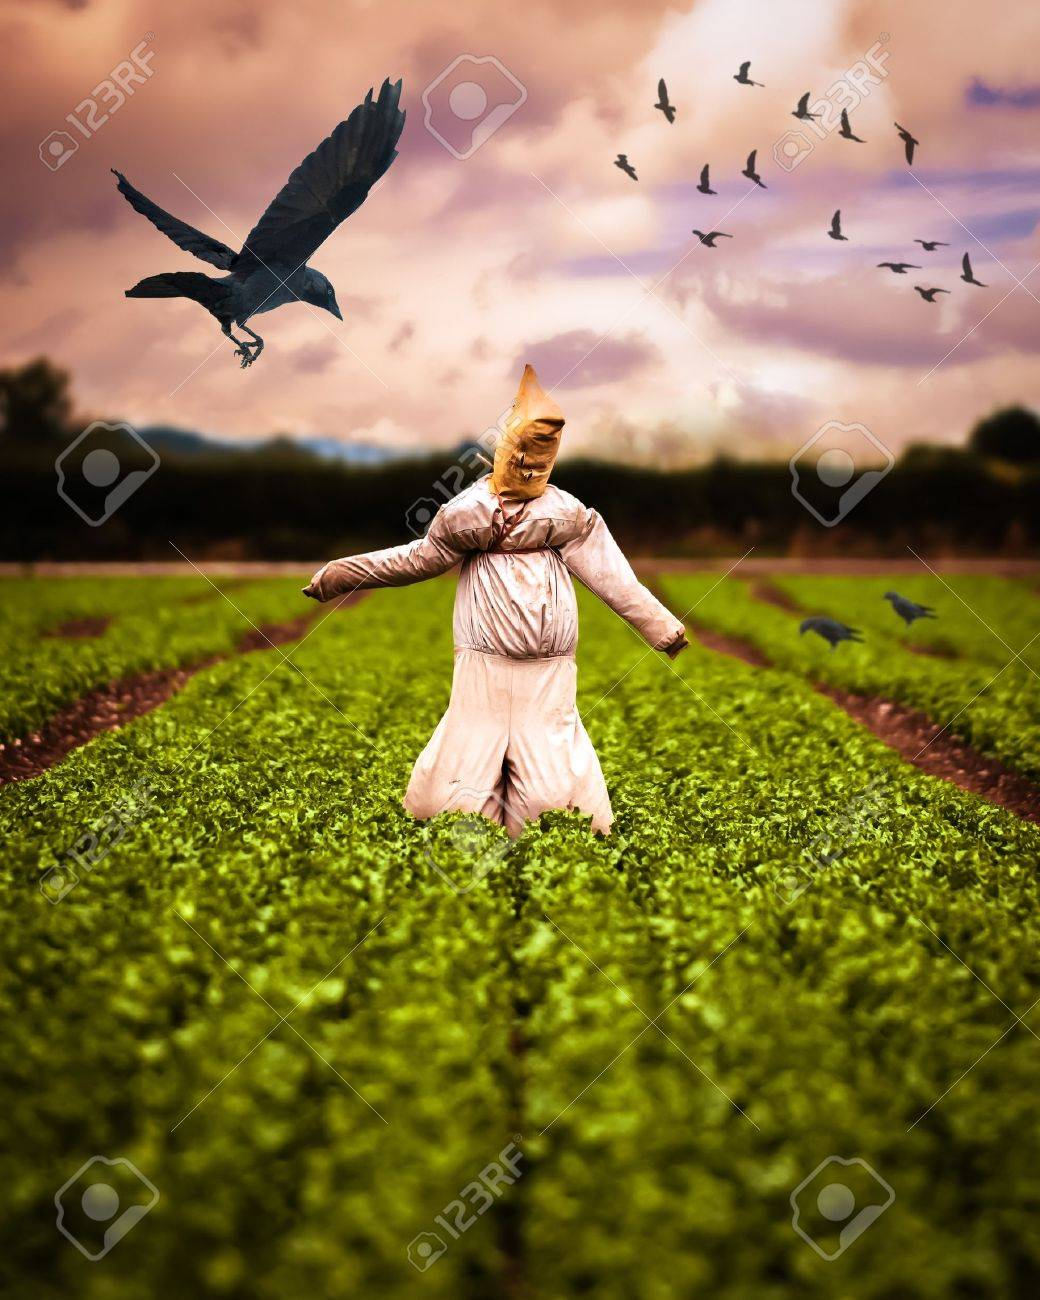 Scarecrow in field of crops with crows - 15409204